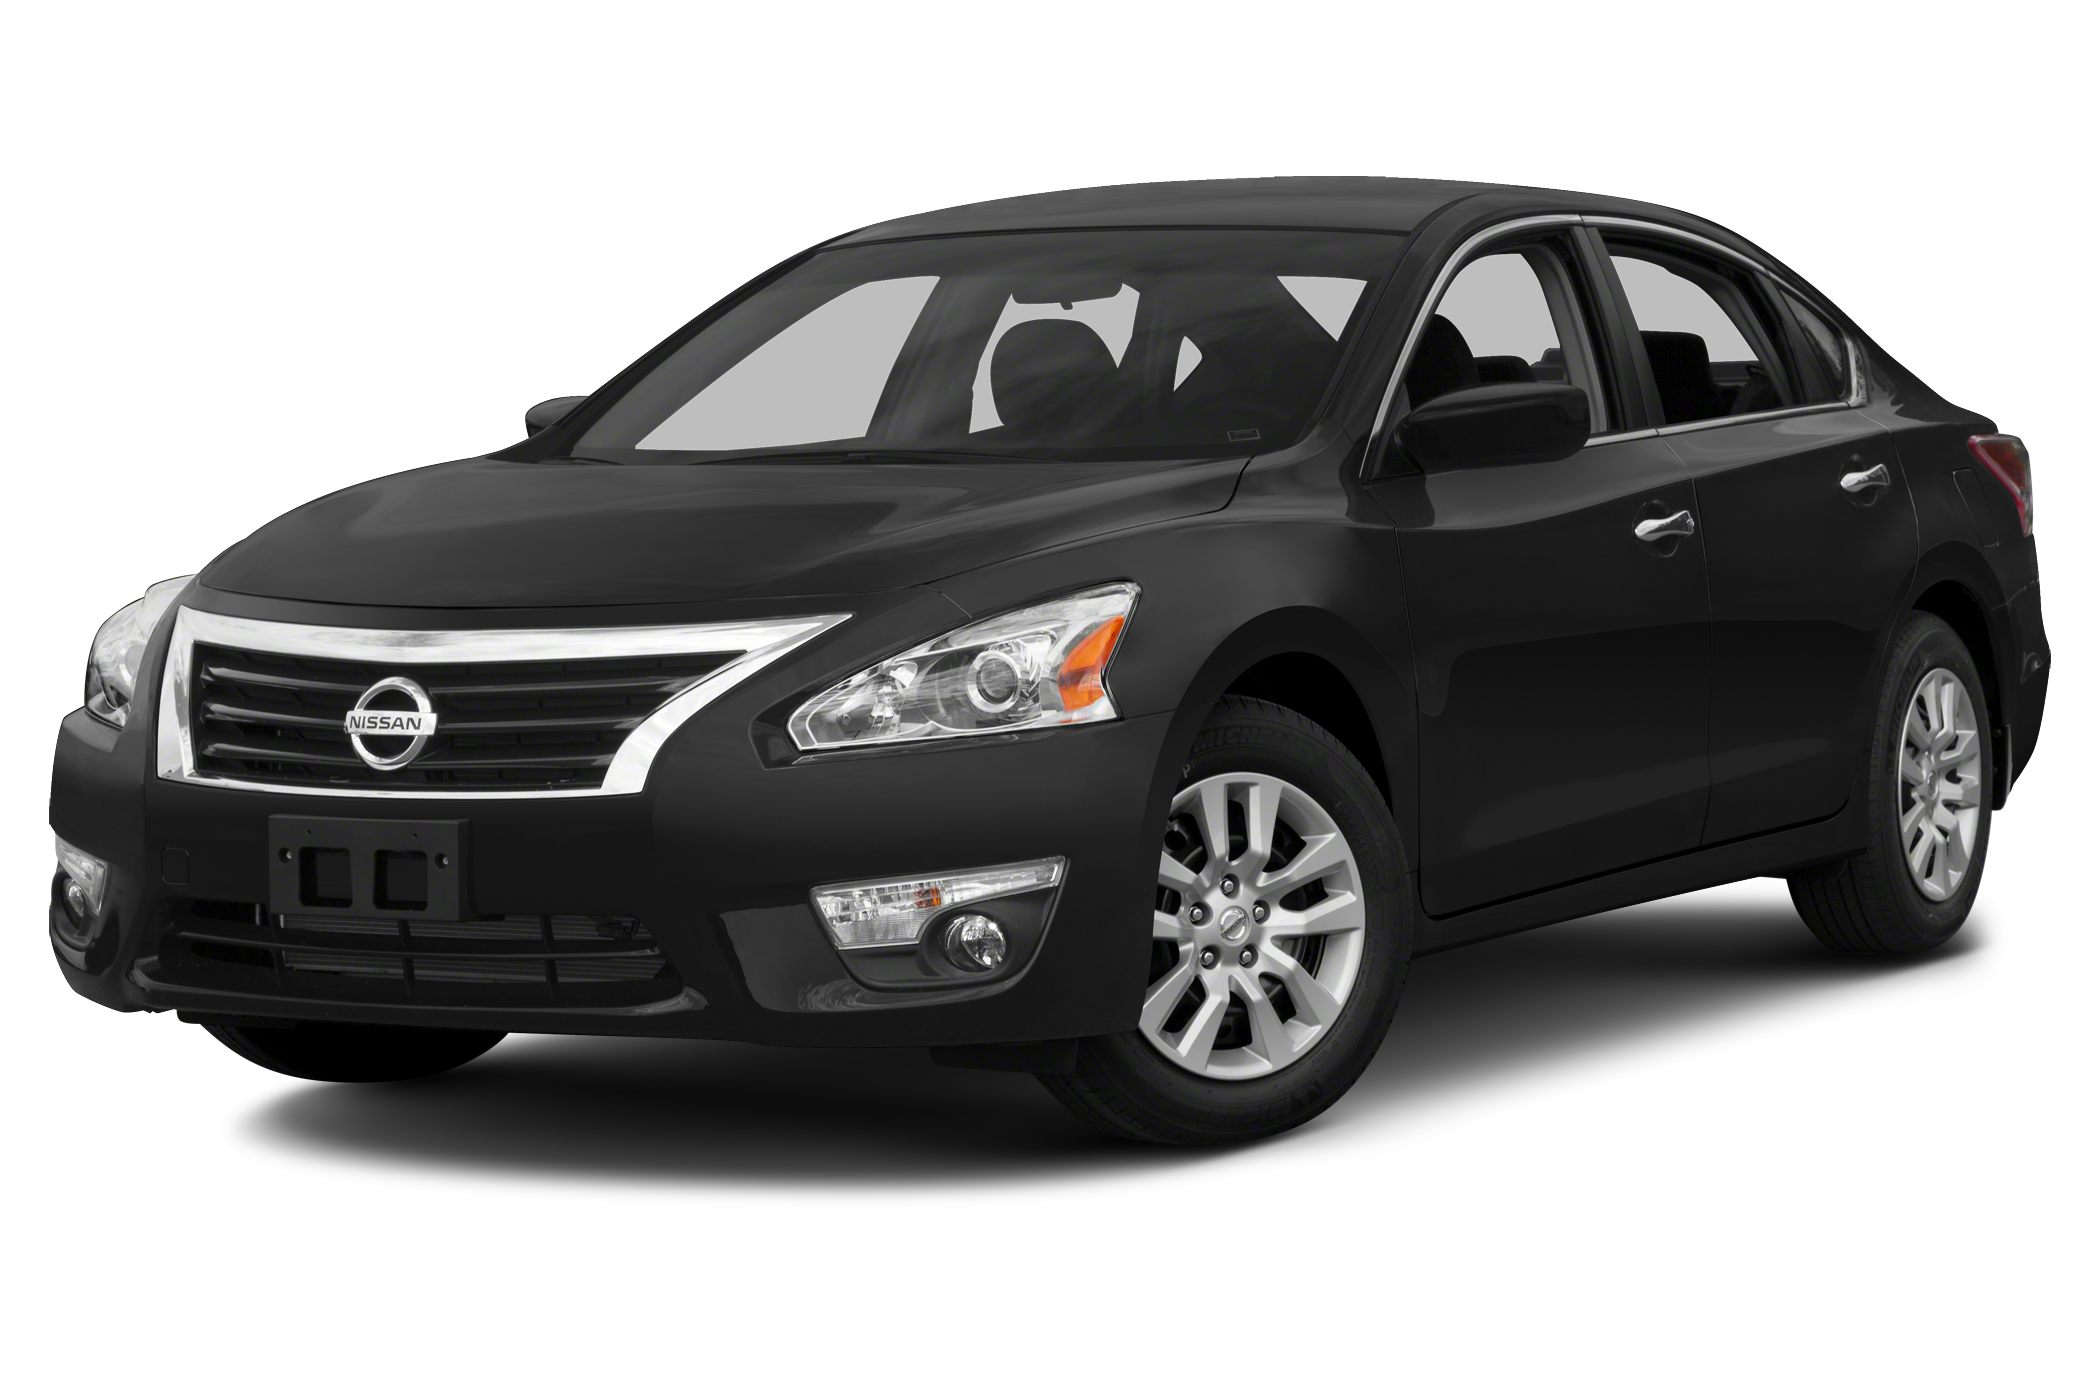 2015 Nissan Altima 2.5 S Sedan for sale in Hawthorne for $25,510 with 13 miles.